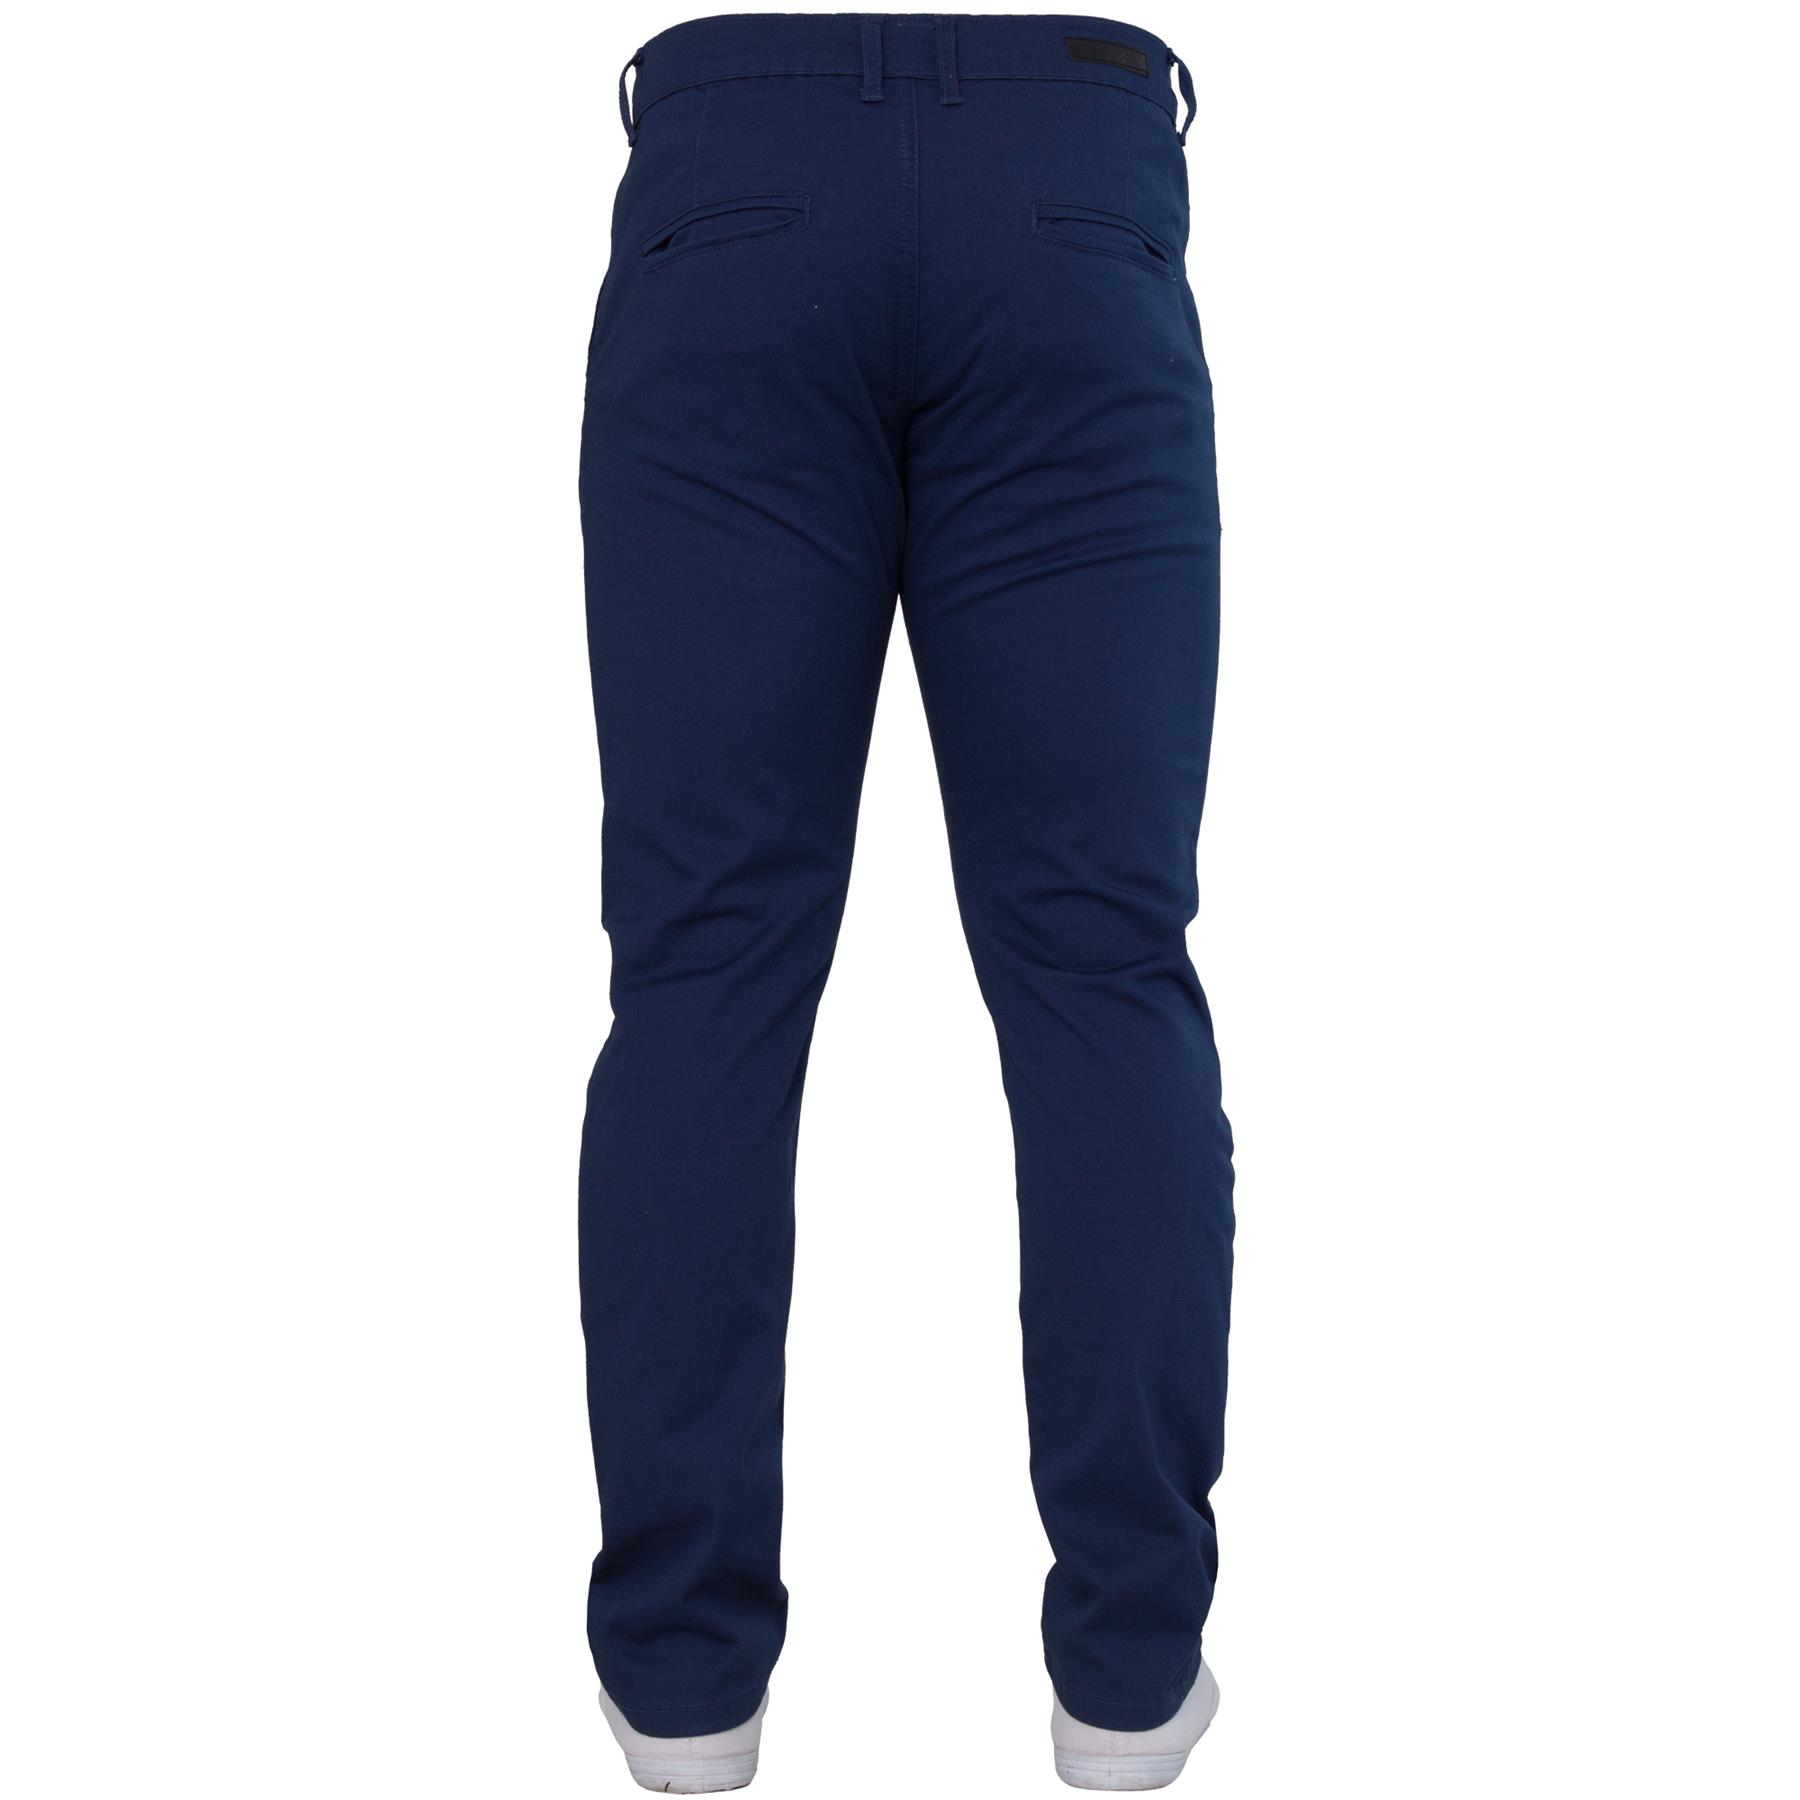 Enzo-Mens-Jeans-Big-Tall-Leg-King-Size-Denim-Pants-Chino-Trousers-Waist-44-034-60-034 miniature 41